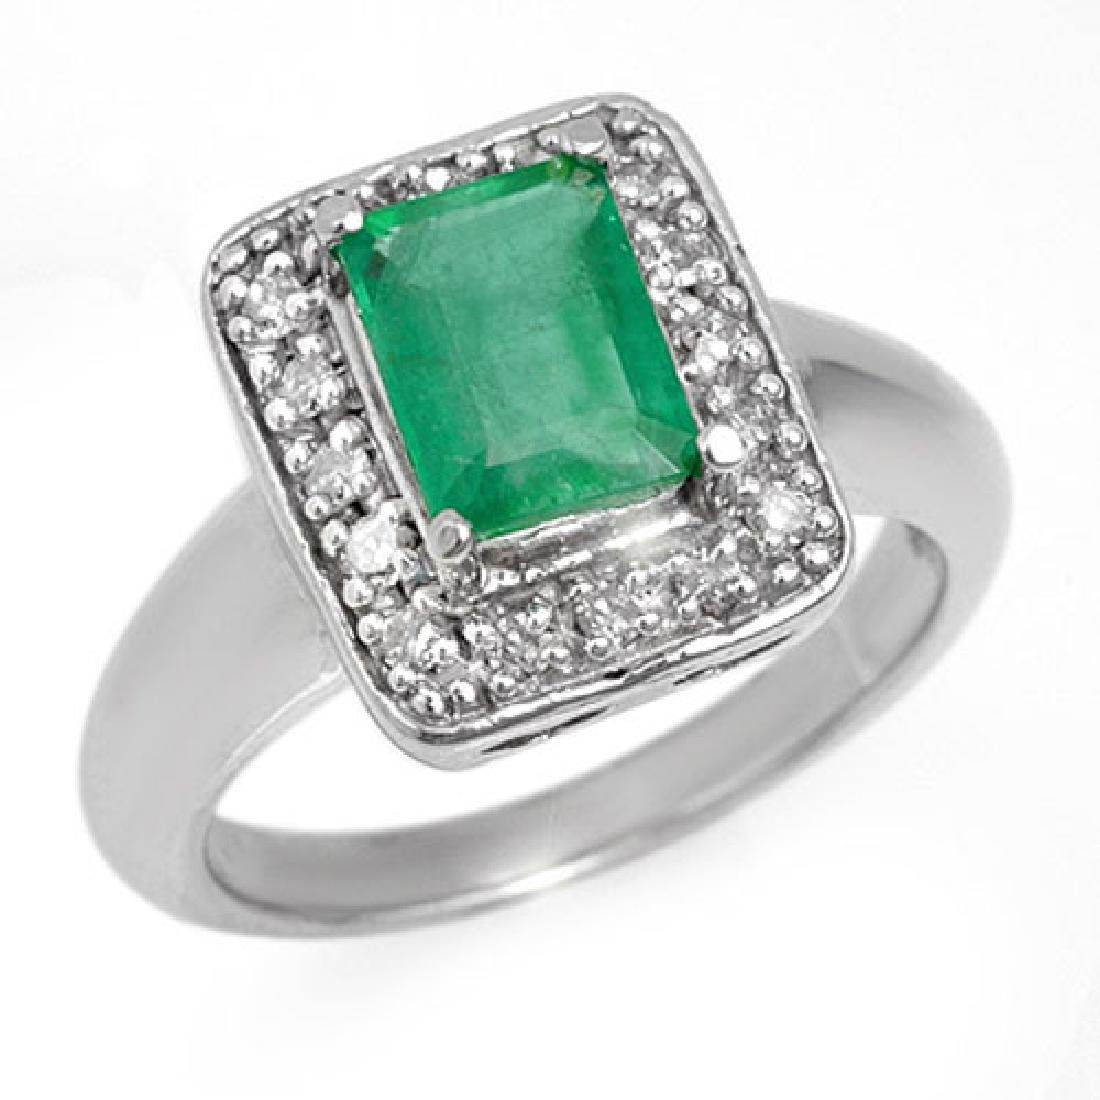 2.03 CTW Emerald & Diamond Ring 10K White Gold